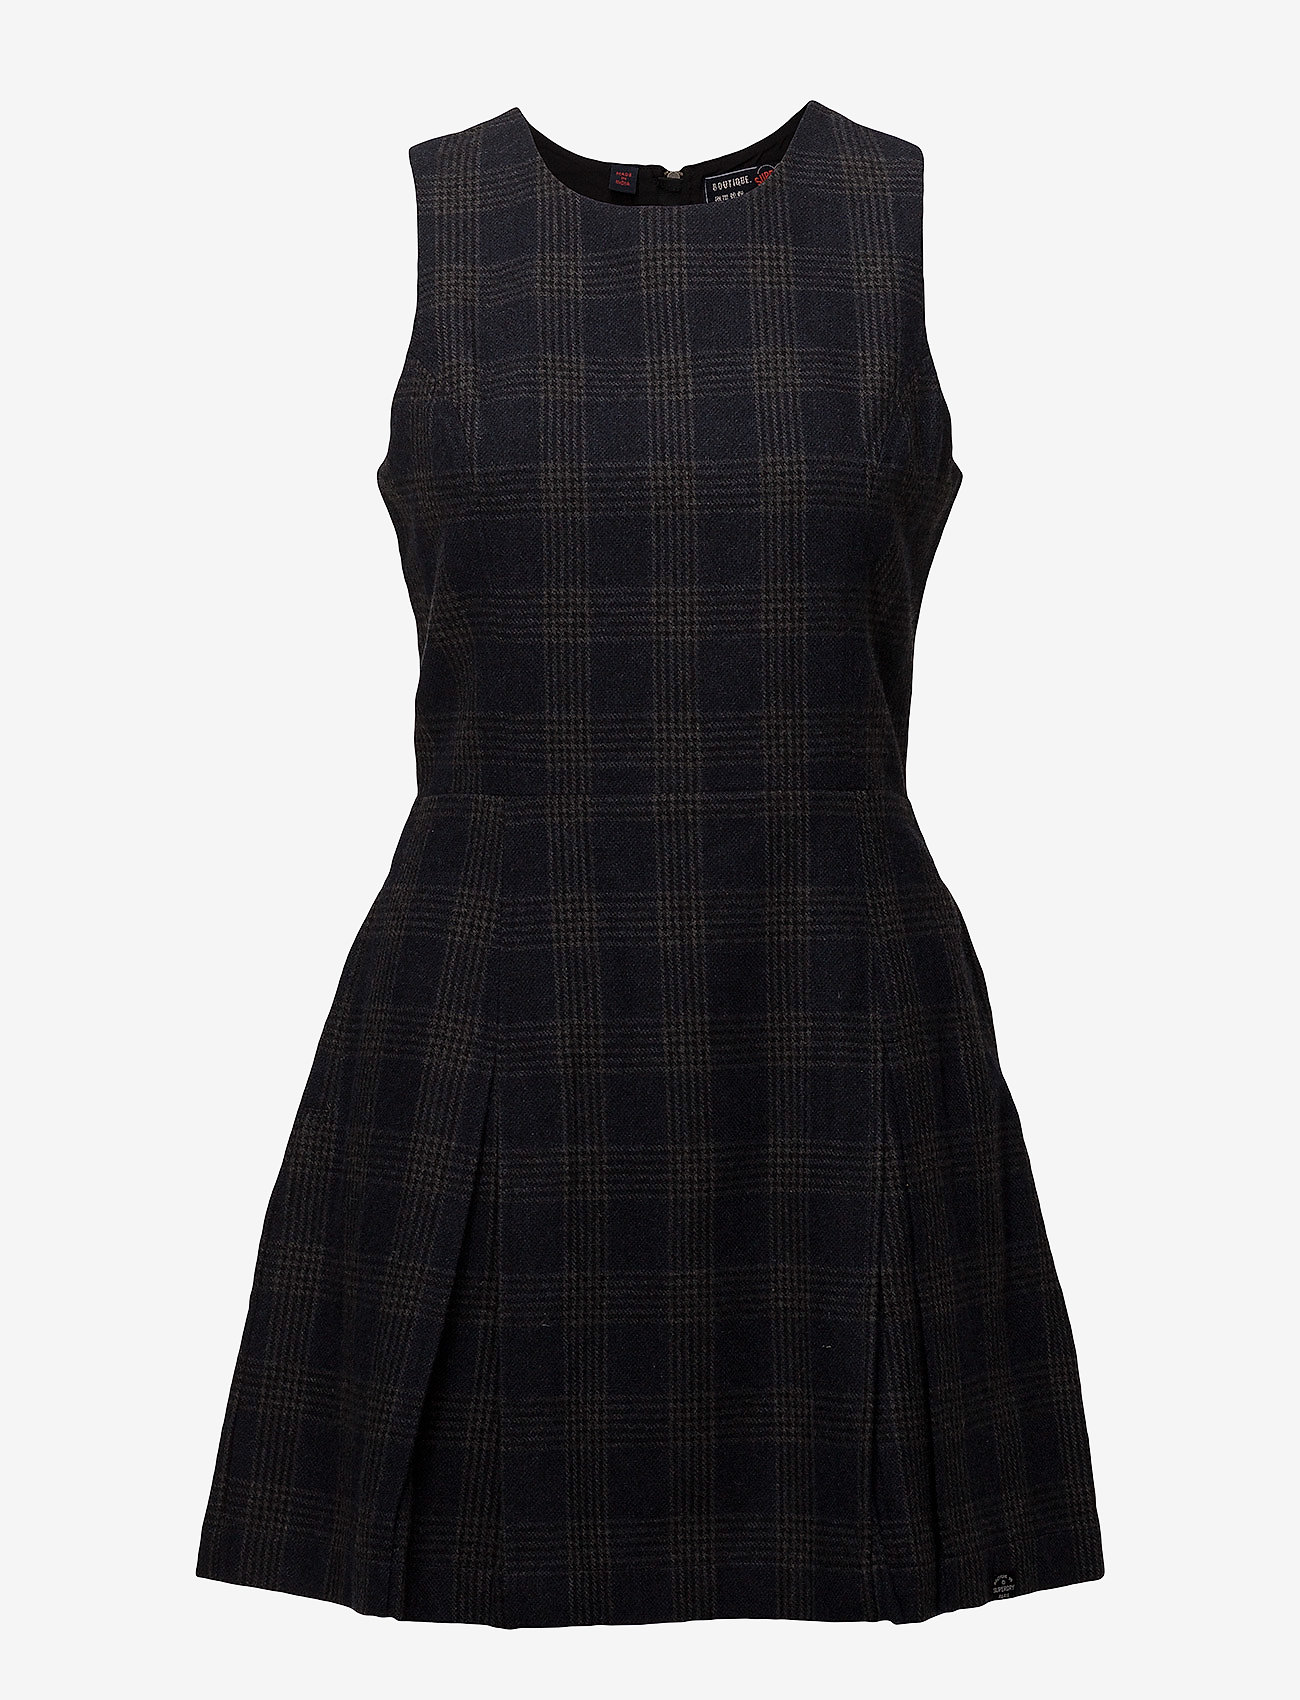 Superdry GEORGIE SHIFT DRESS - Sukienki NAVY CHARCOAL CHECK - Kobiety Odzież.